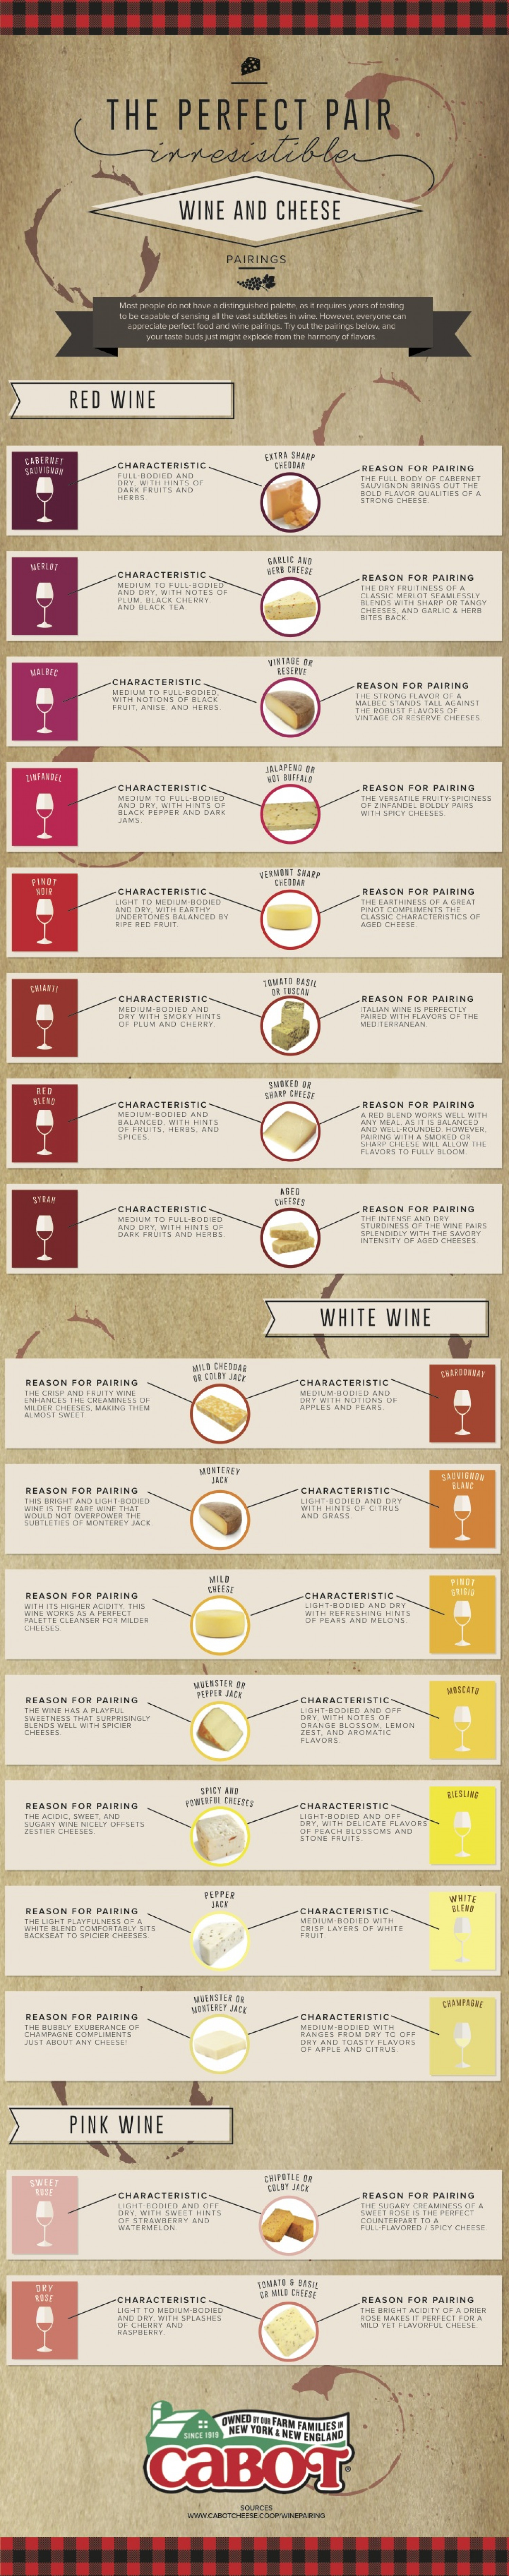 A Visual Cheese And Wine Pairing Guide  Infographic